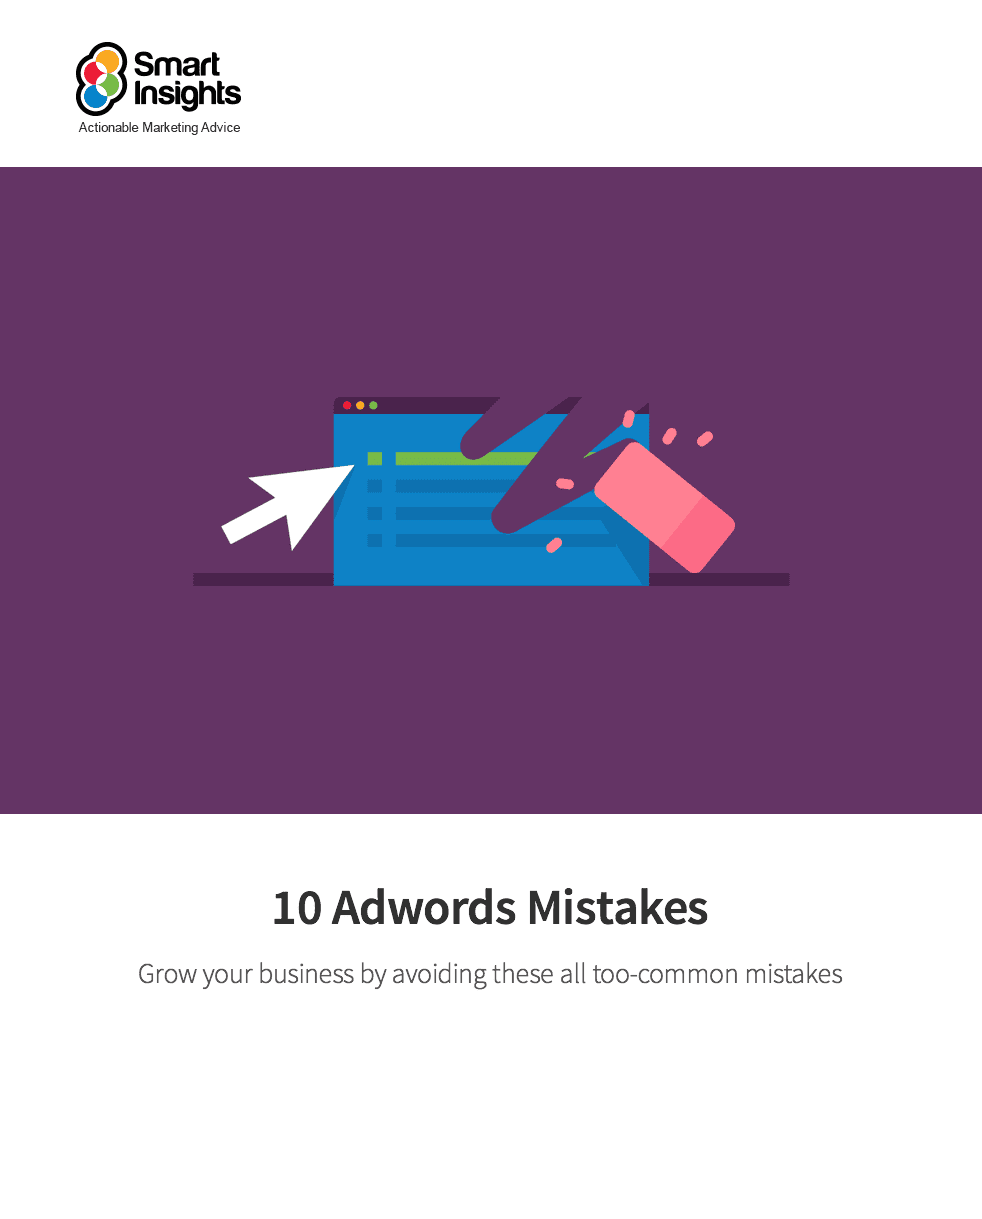 10 extremely costly AdWords mistakes you need to avoid at all costs